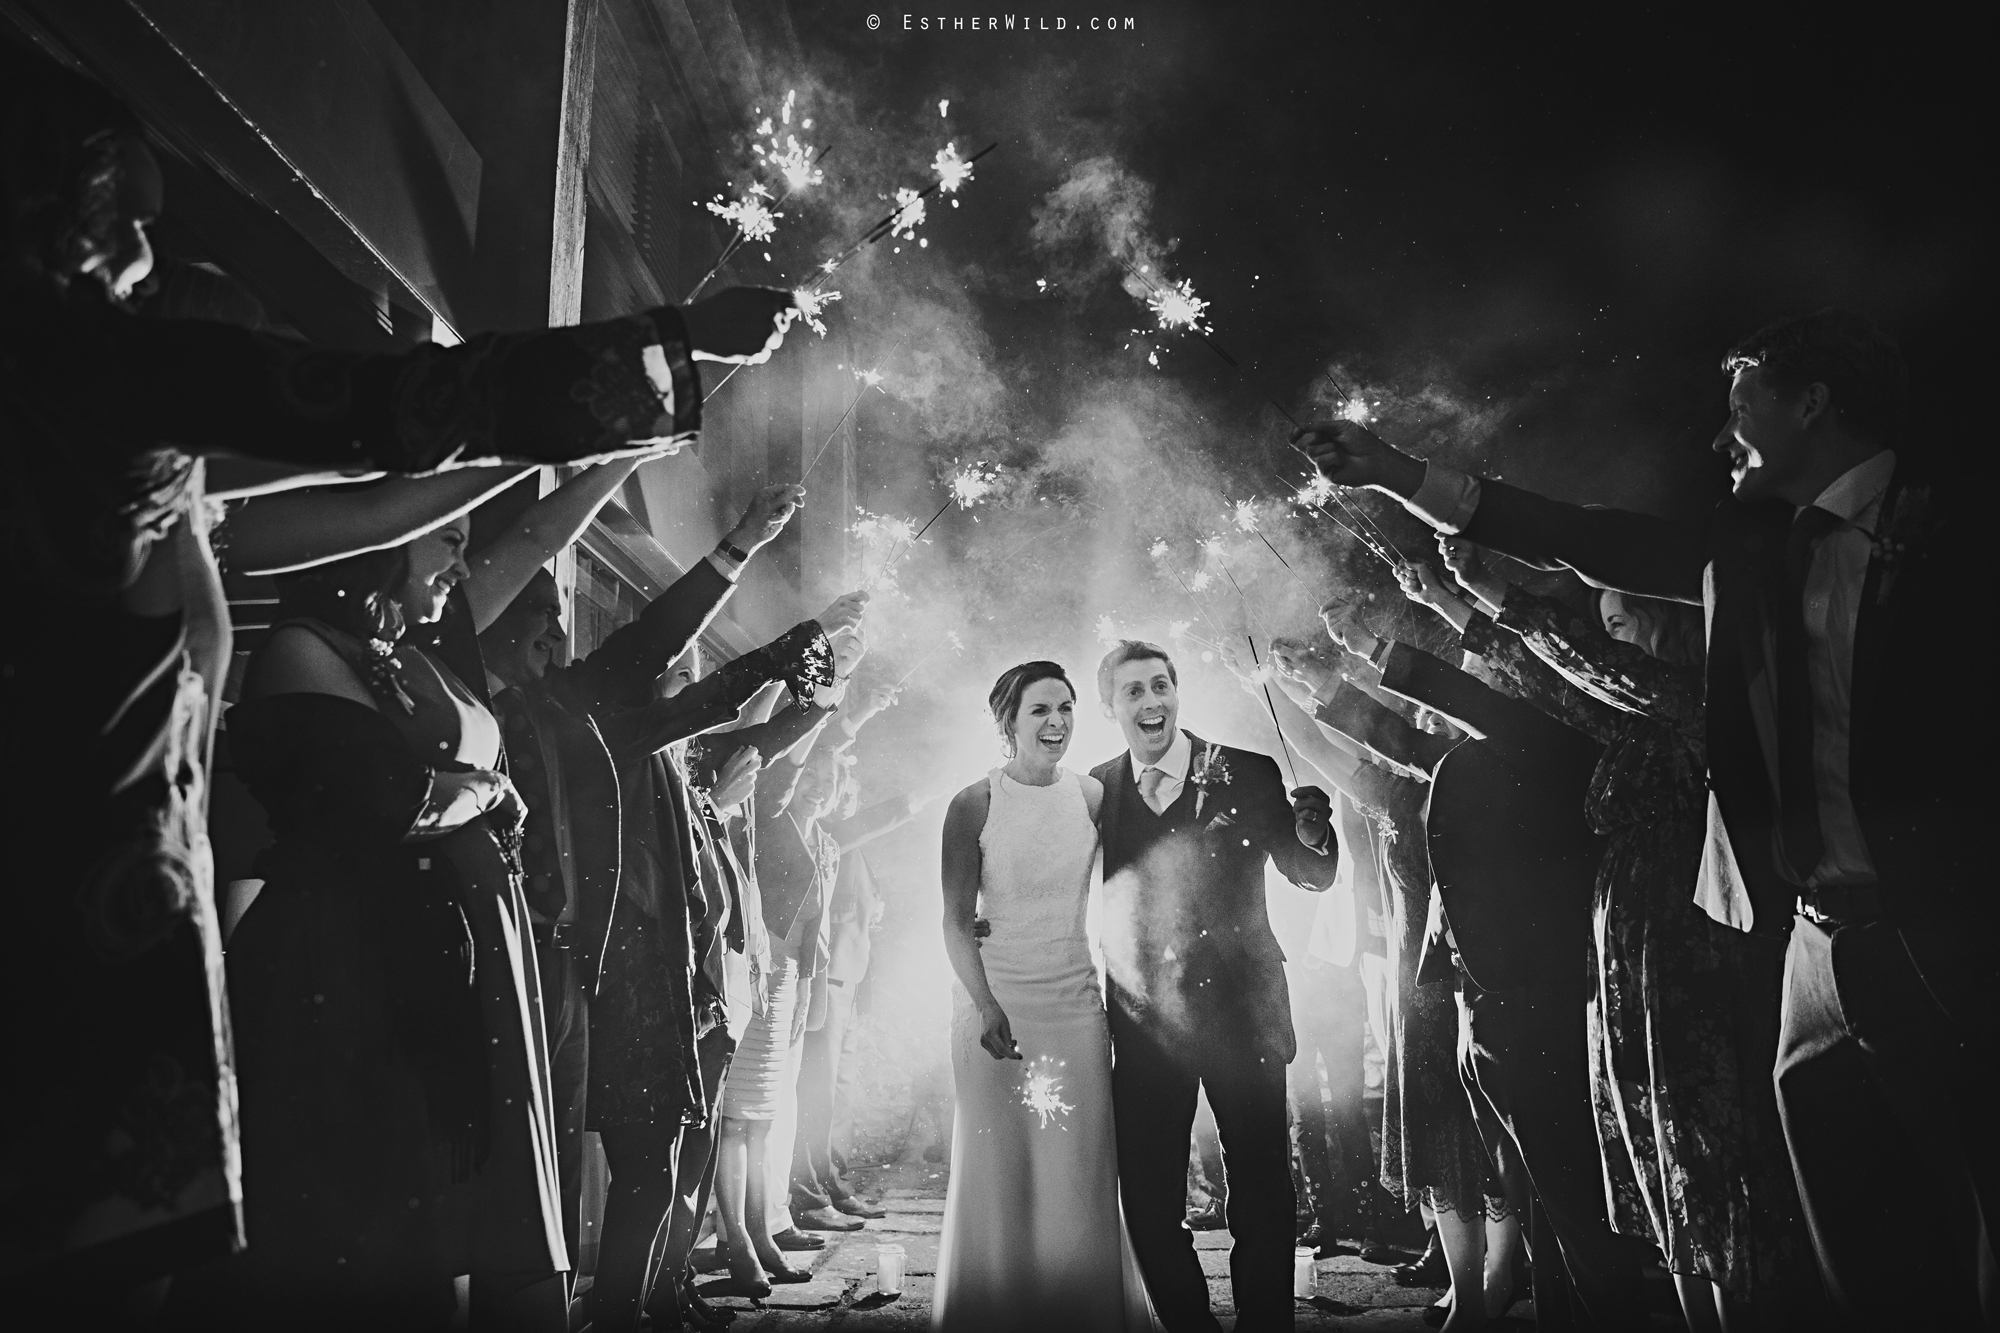 Wedding_Photographer_Chaucer_Barn_Holt_Norfolk_Country_Rustic_Venue_Copyright_Esther_Wild_IMG_2148-2.jpg